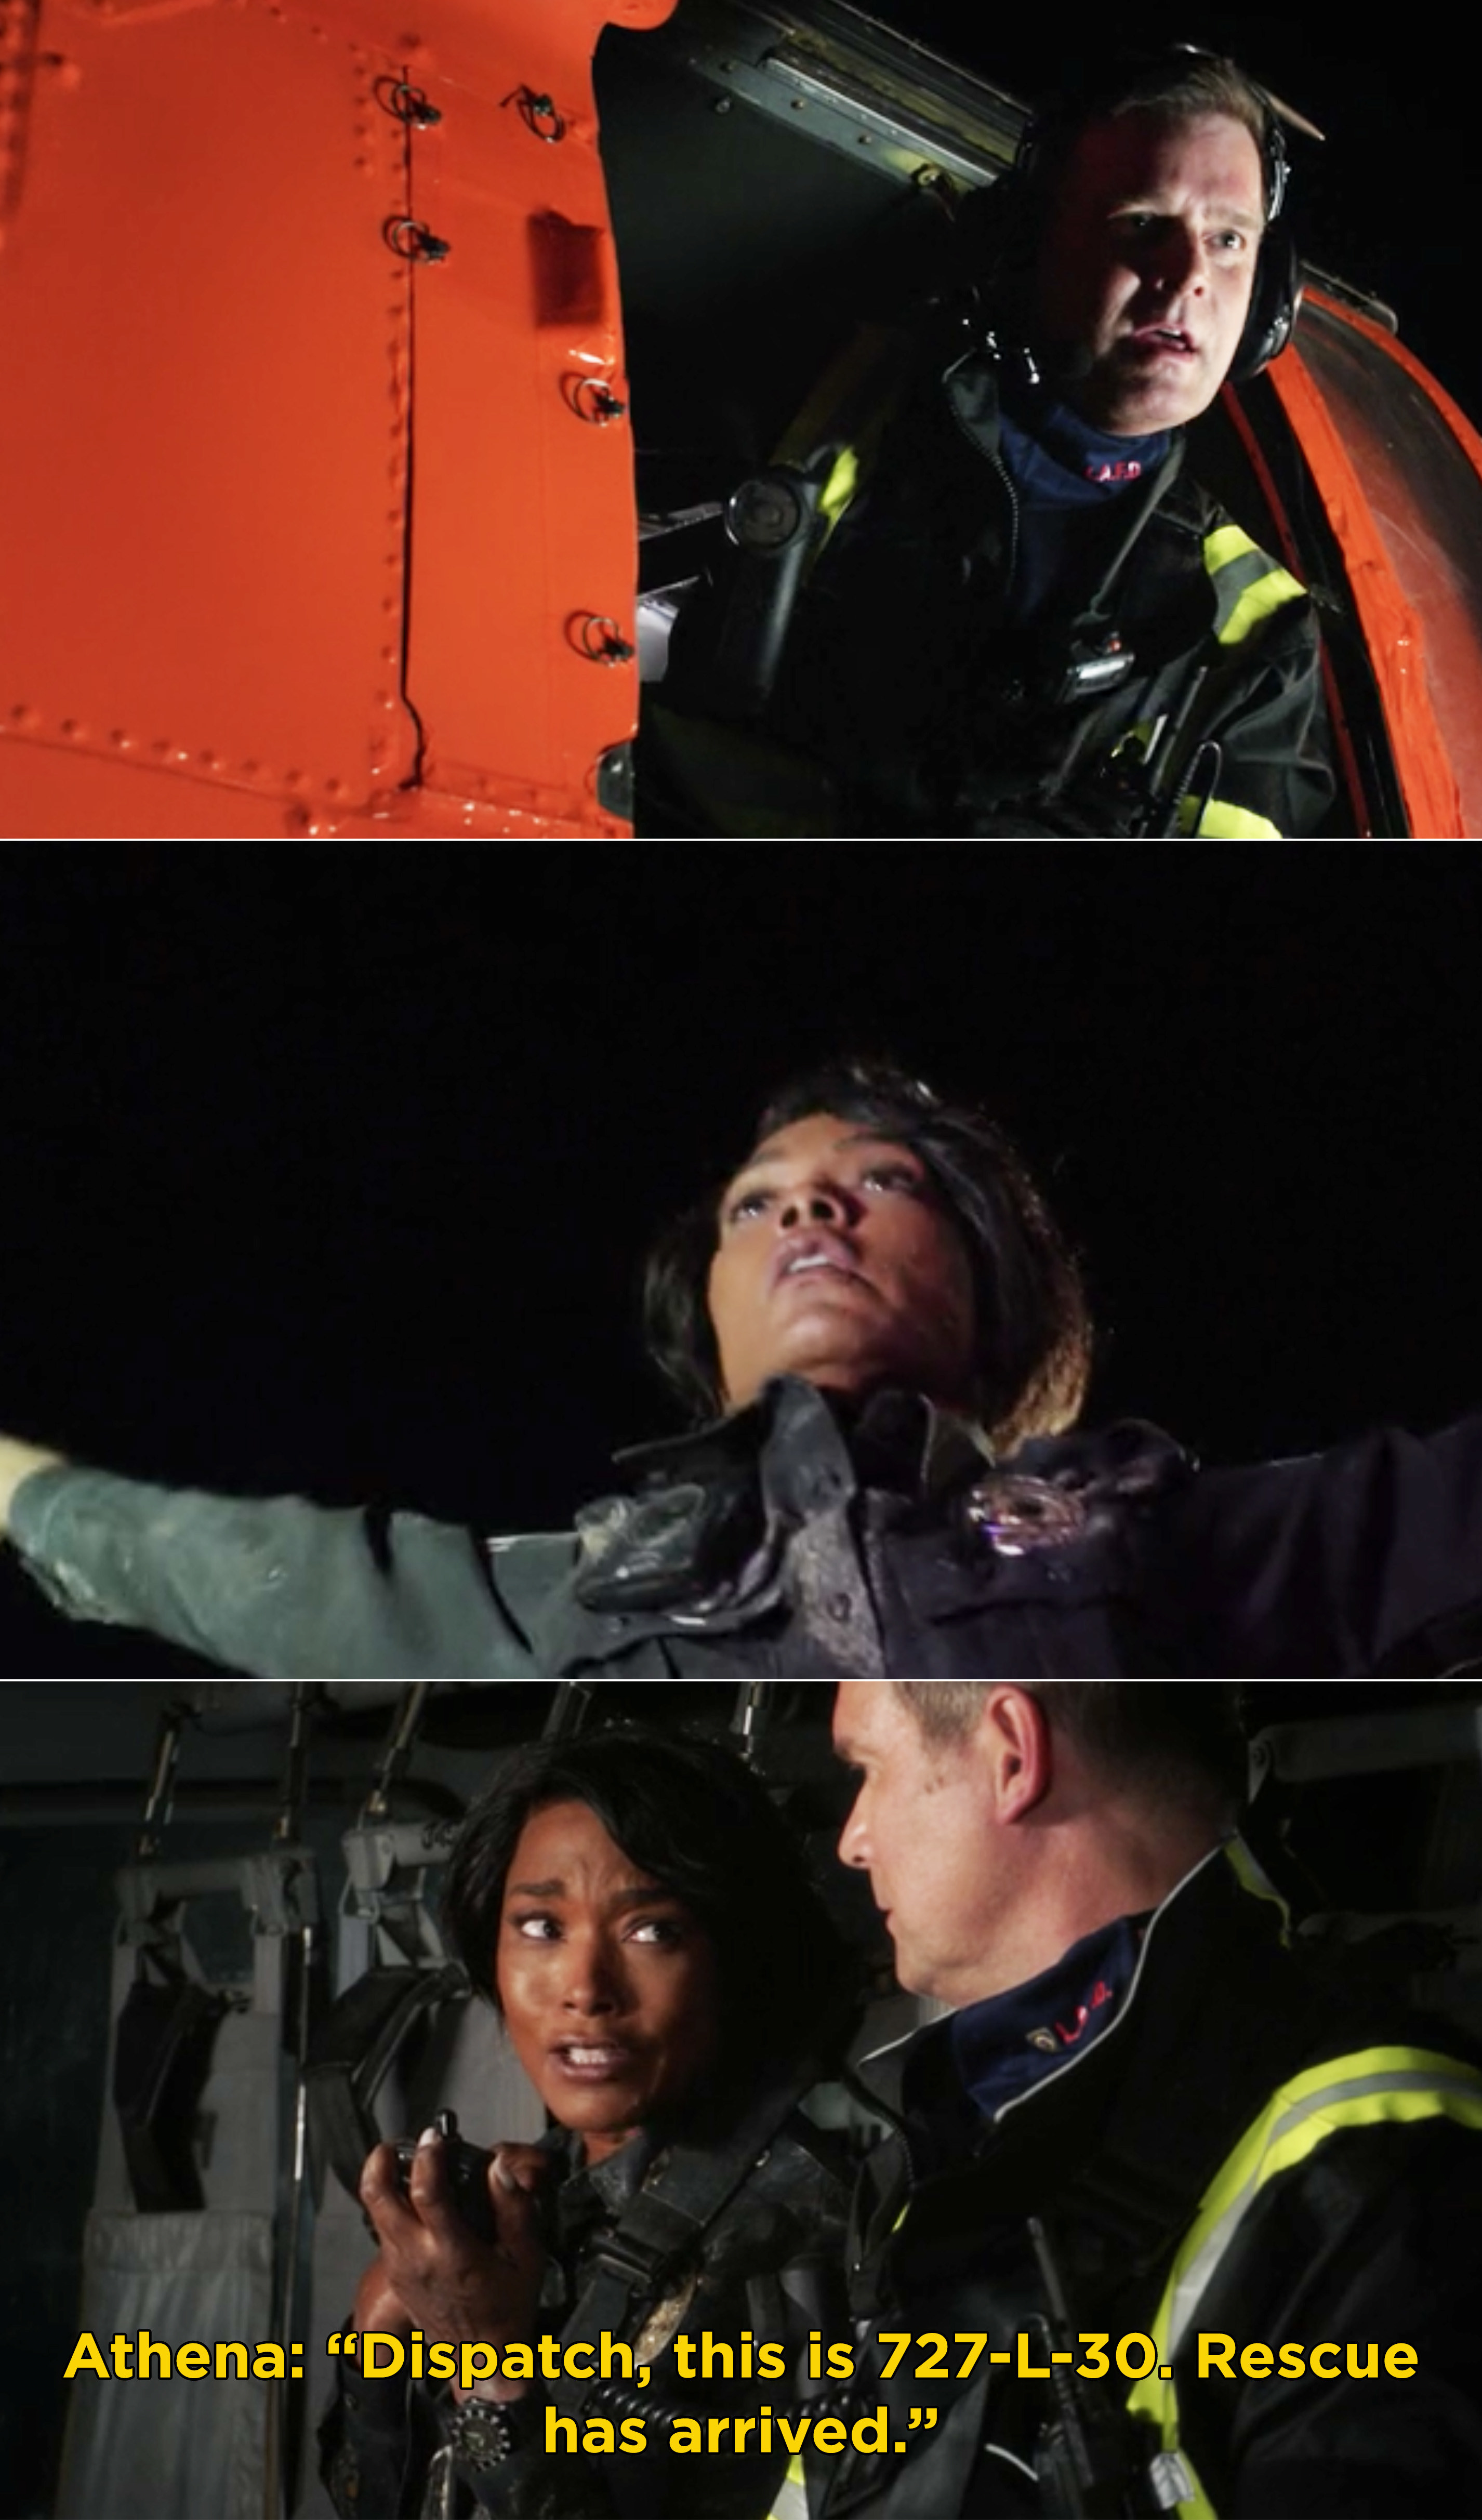 """Bobby finding Athena while riding a helicopter and Athena radioing in saying, """"Dispatch, this is 727-L-30. Rescue has arrived"""""""